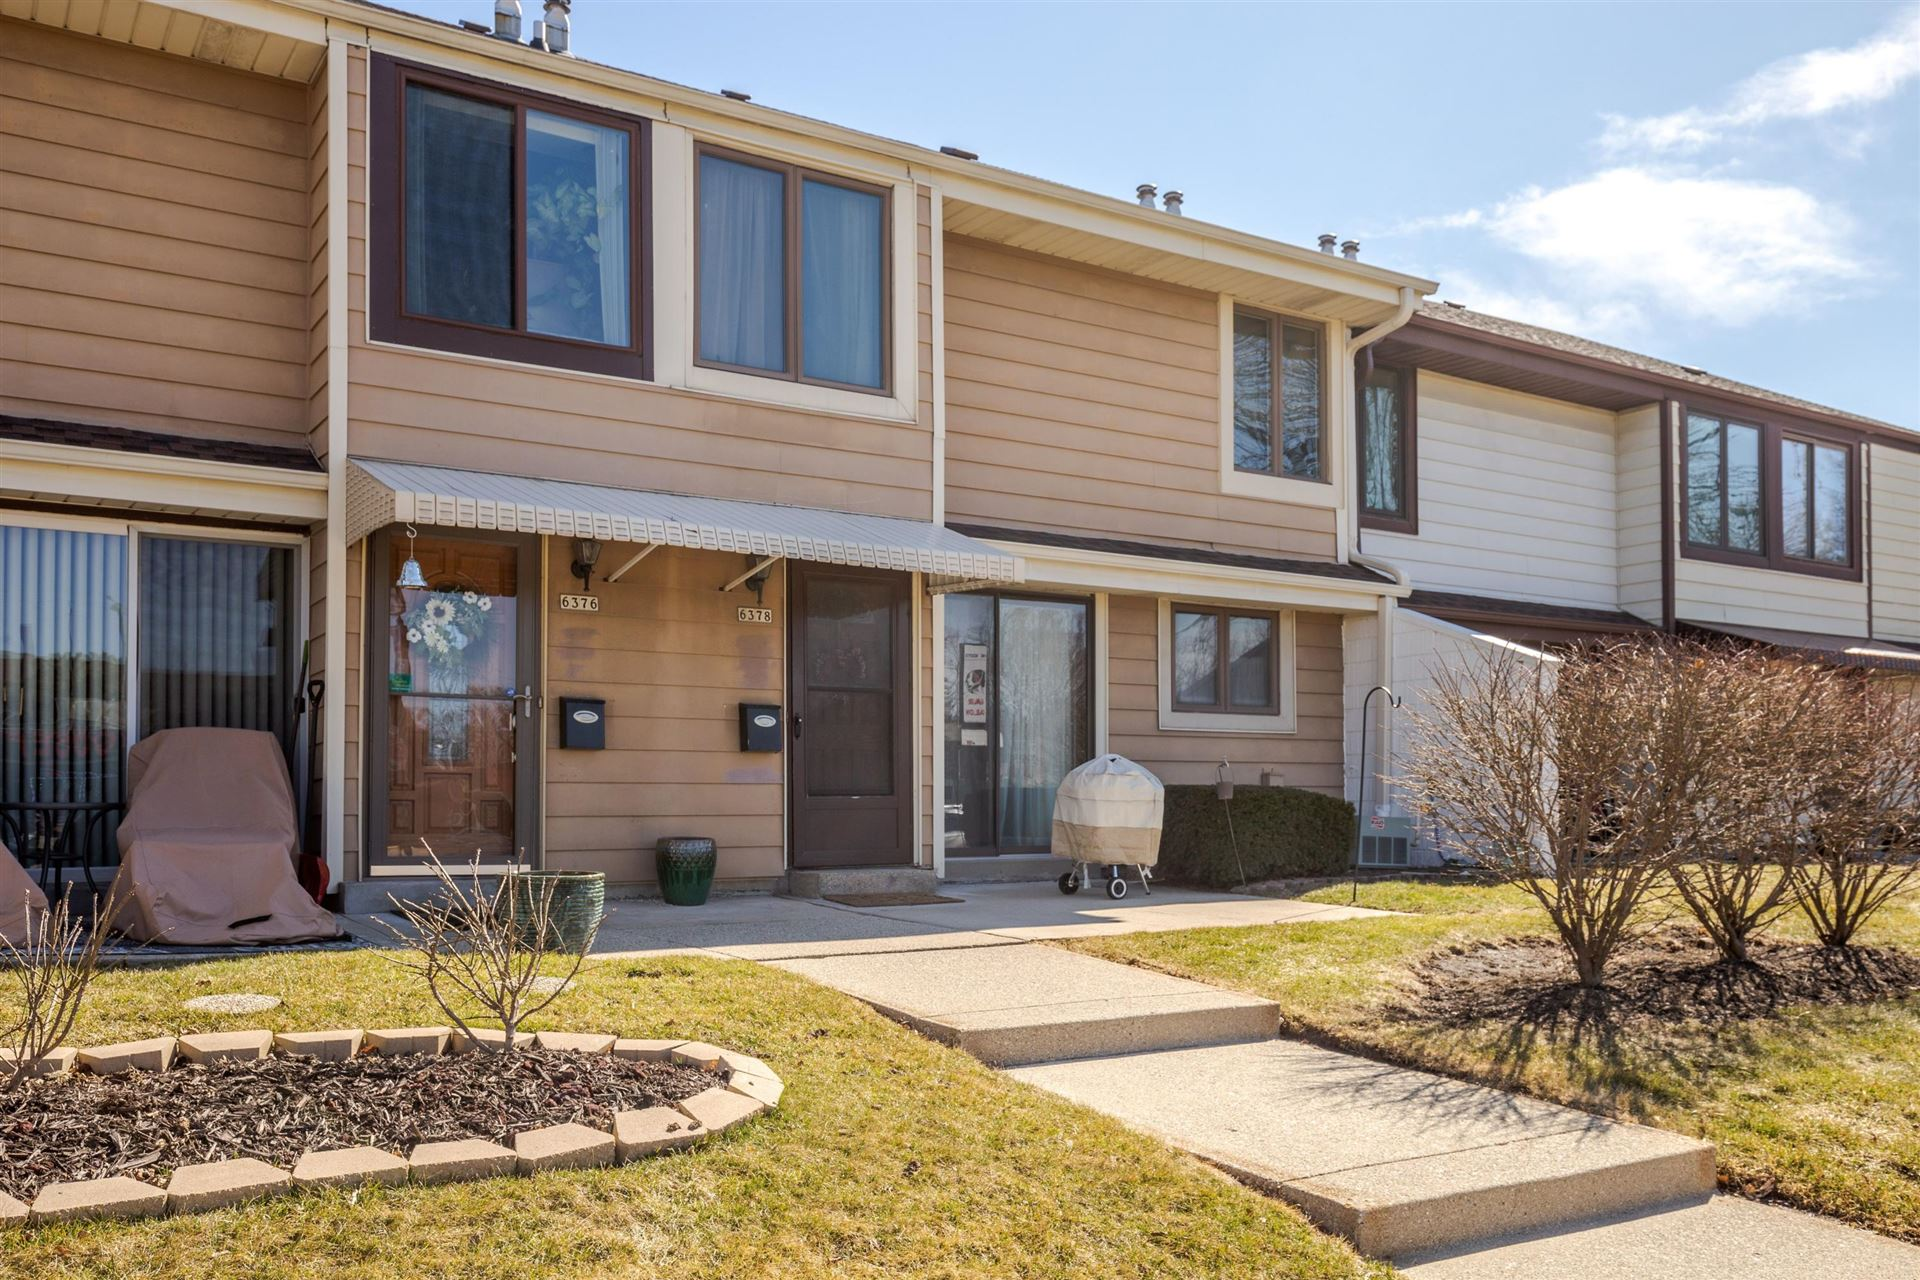 6378 S 20th St, Milwaukee, WI 53221 - #: 1681456